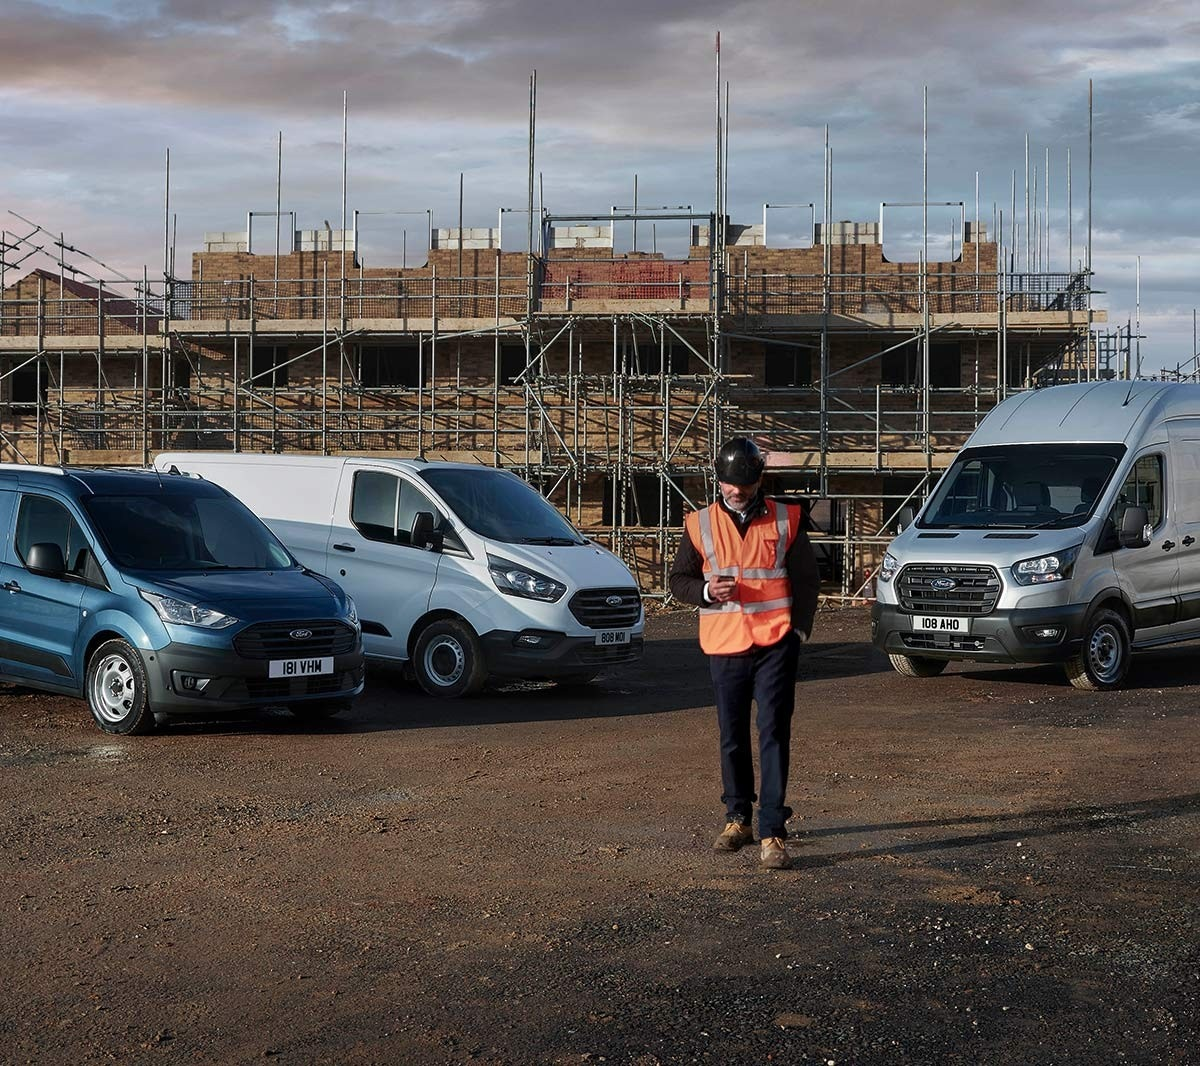 Building site with man in high viz jacket and various Ford cars